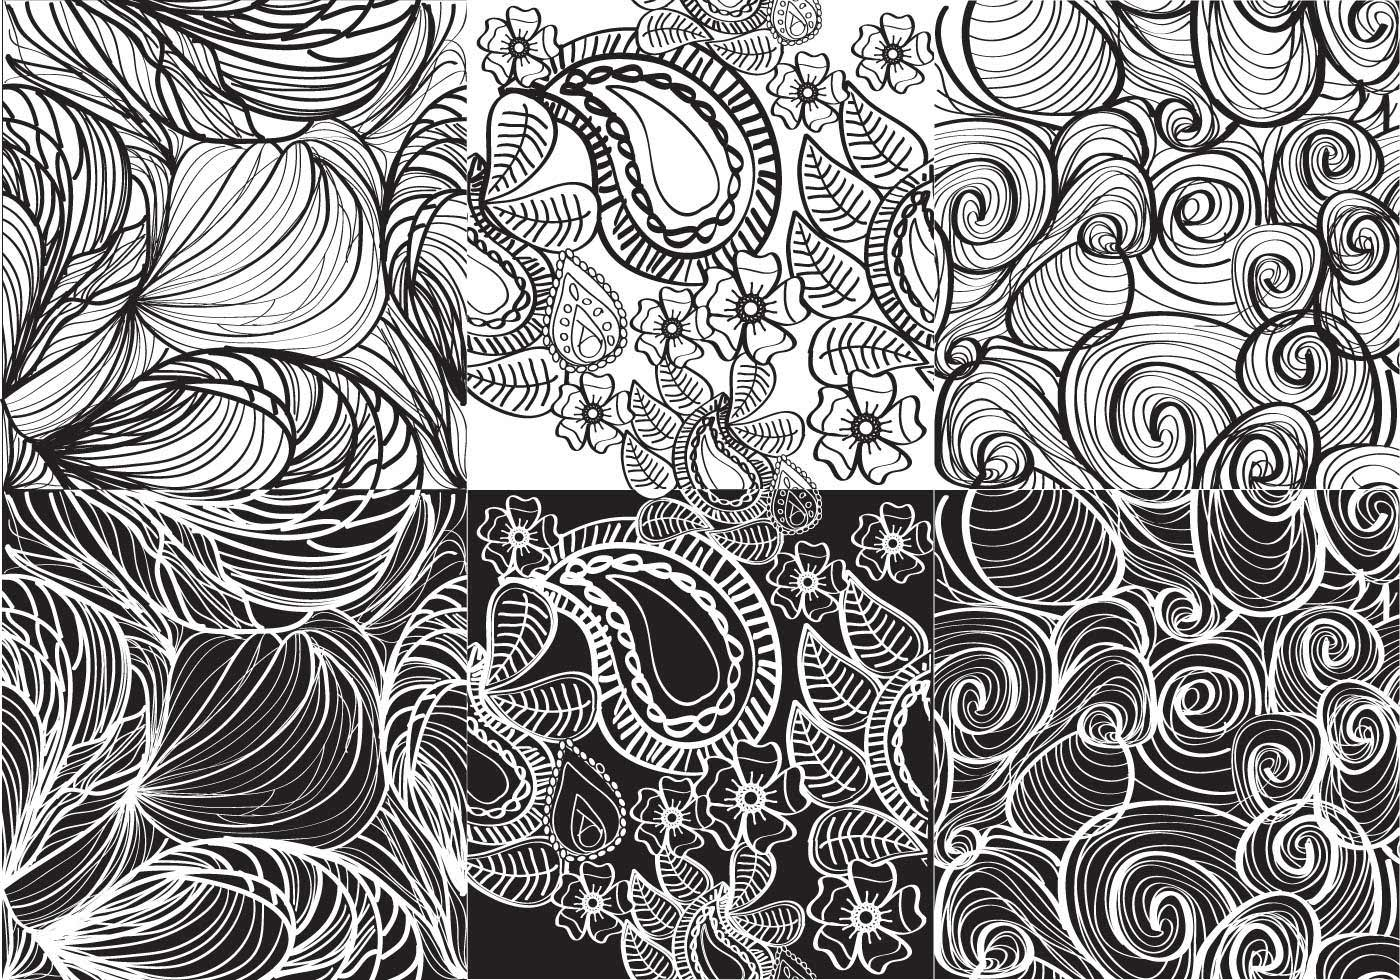 Cute Indian Baby Images For Wallpaper Set White And Black Paisley Vectors Download Free Vector